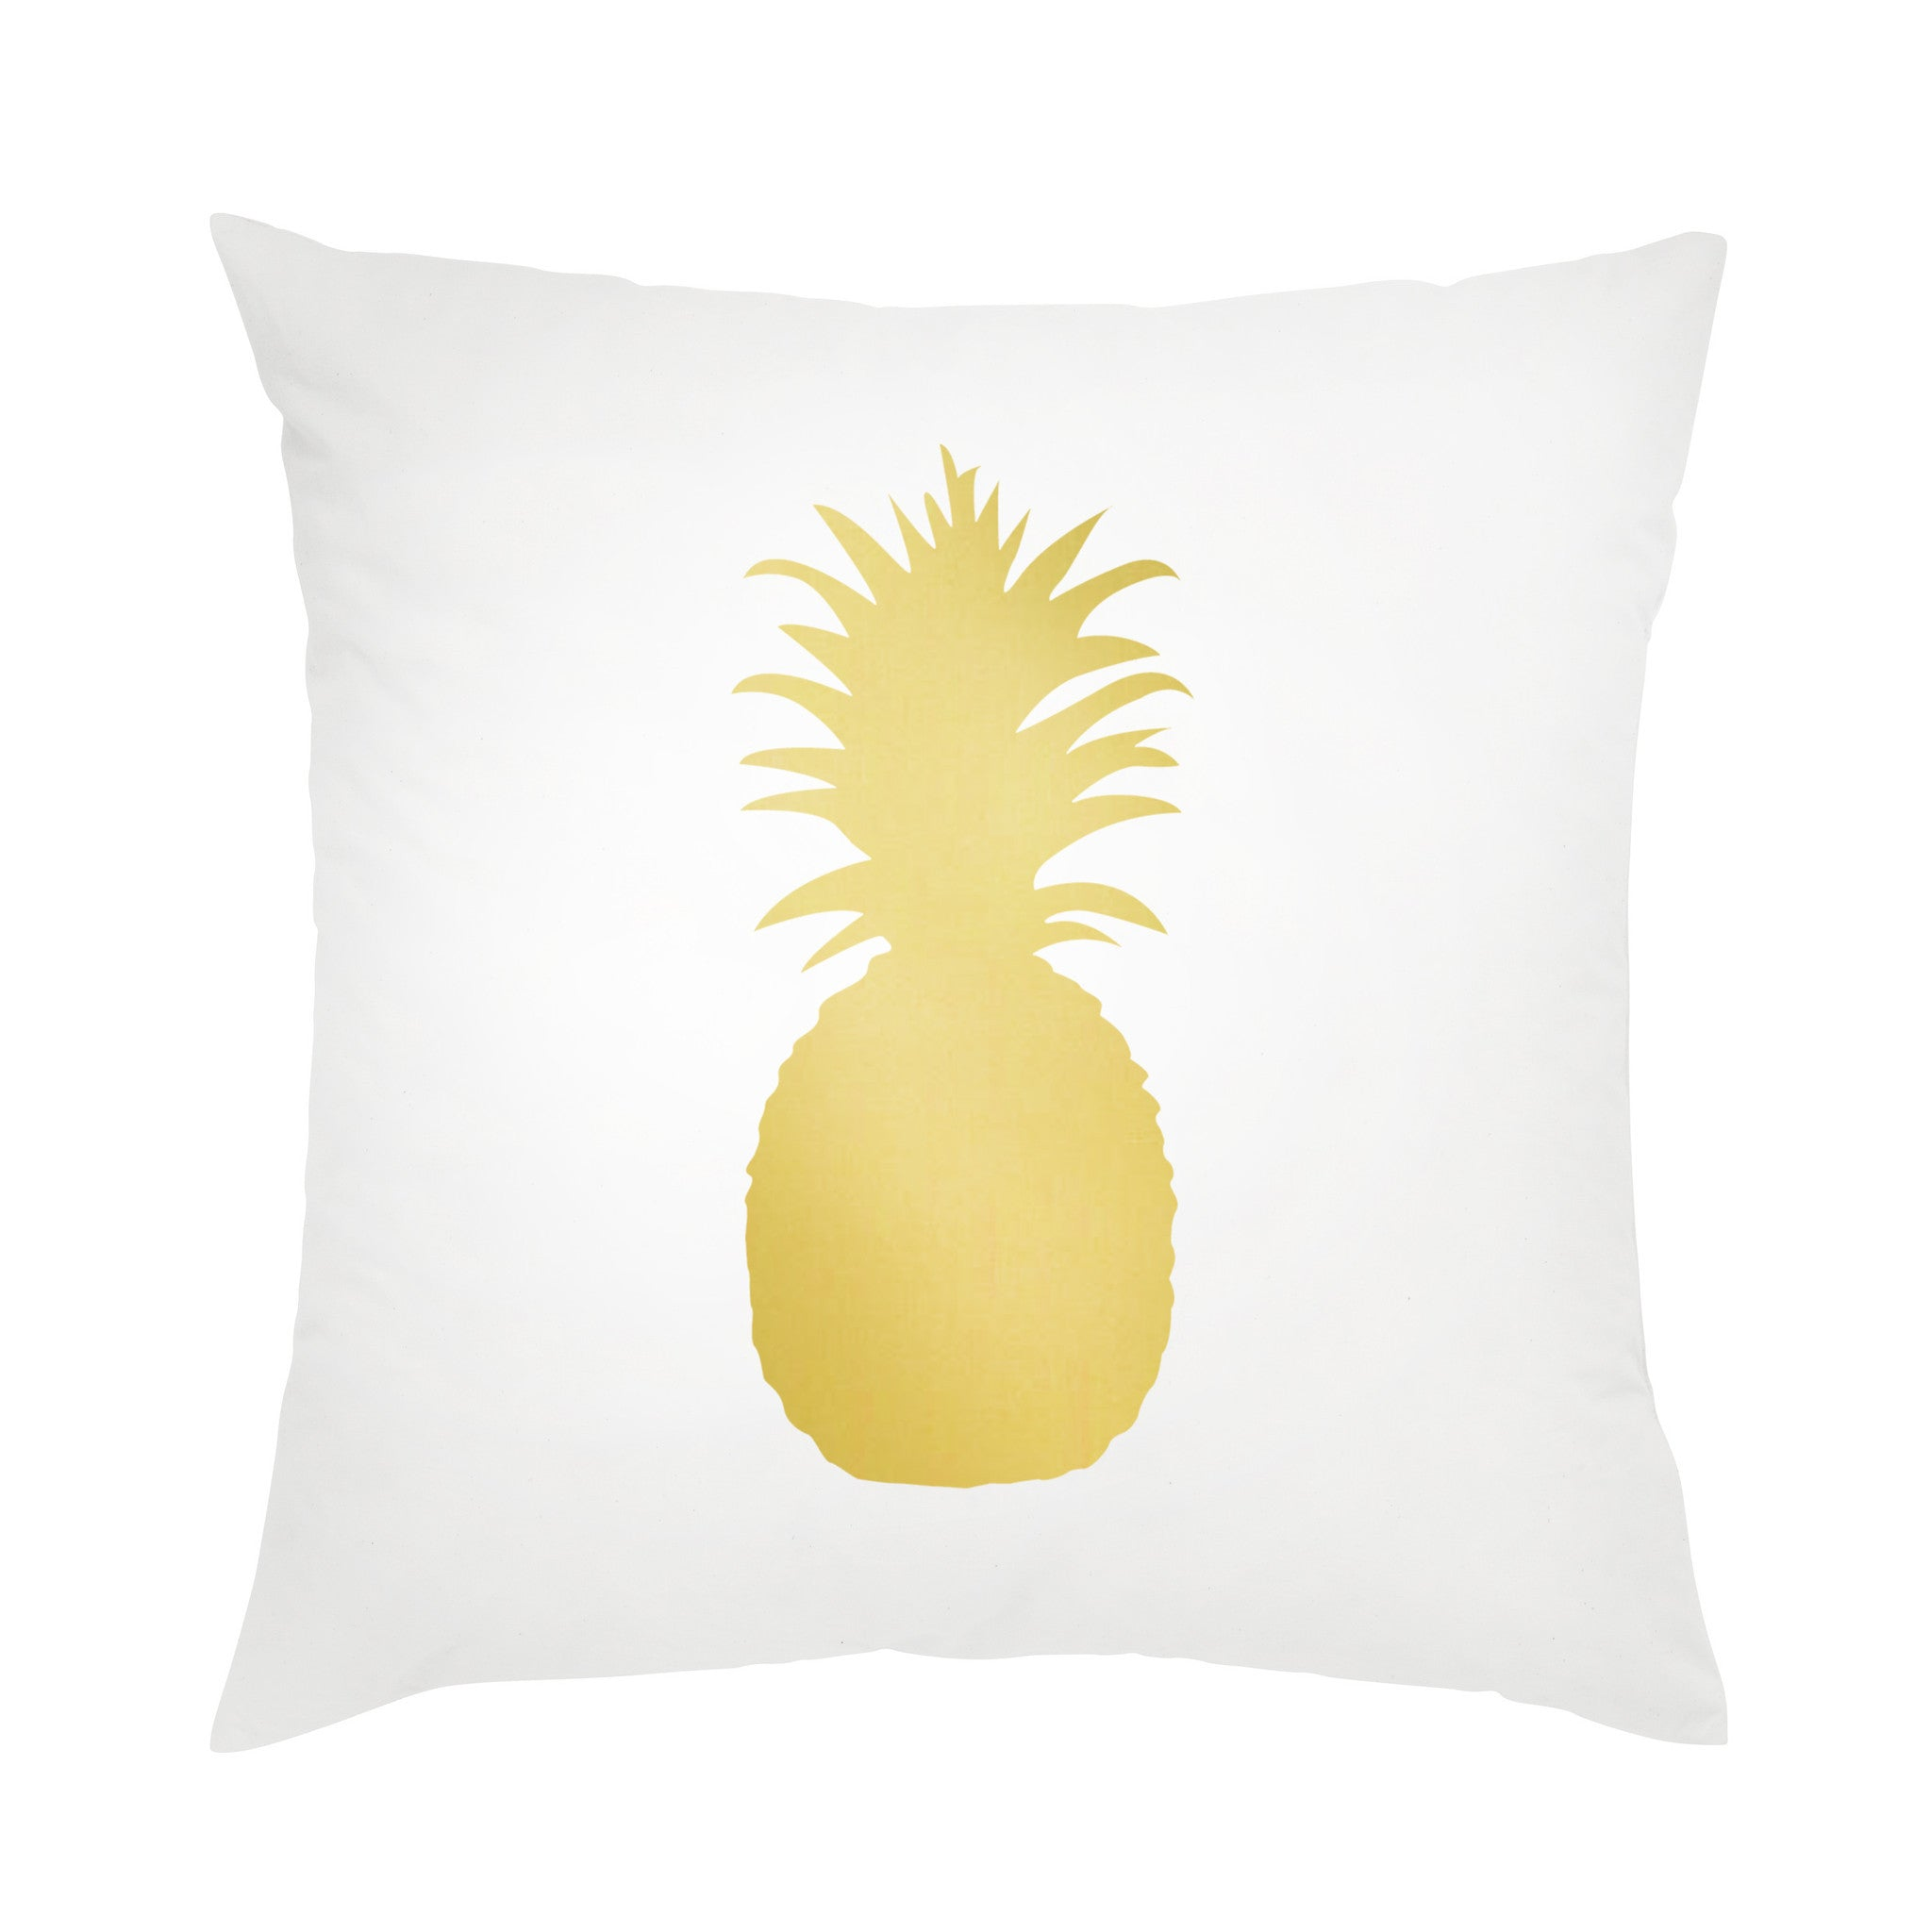 covers loudurack toss save cushions pineapple buy on pinterest and cushion cover ideas pop loft digital pillows print now best images pillow